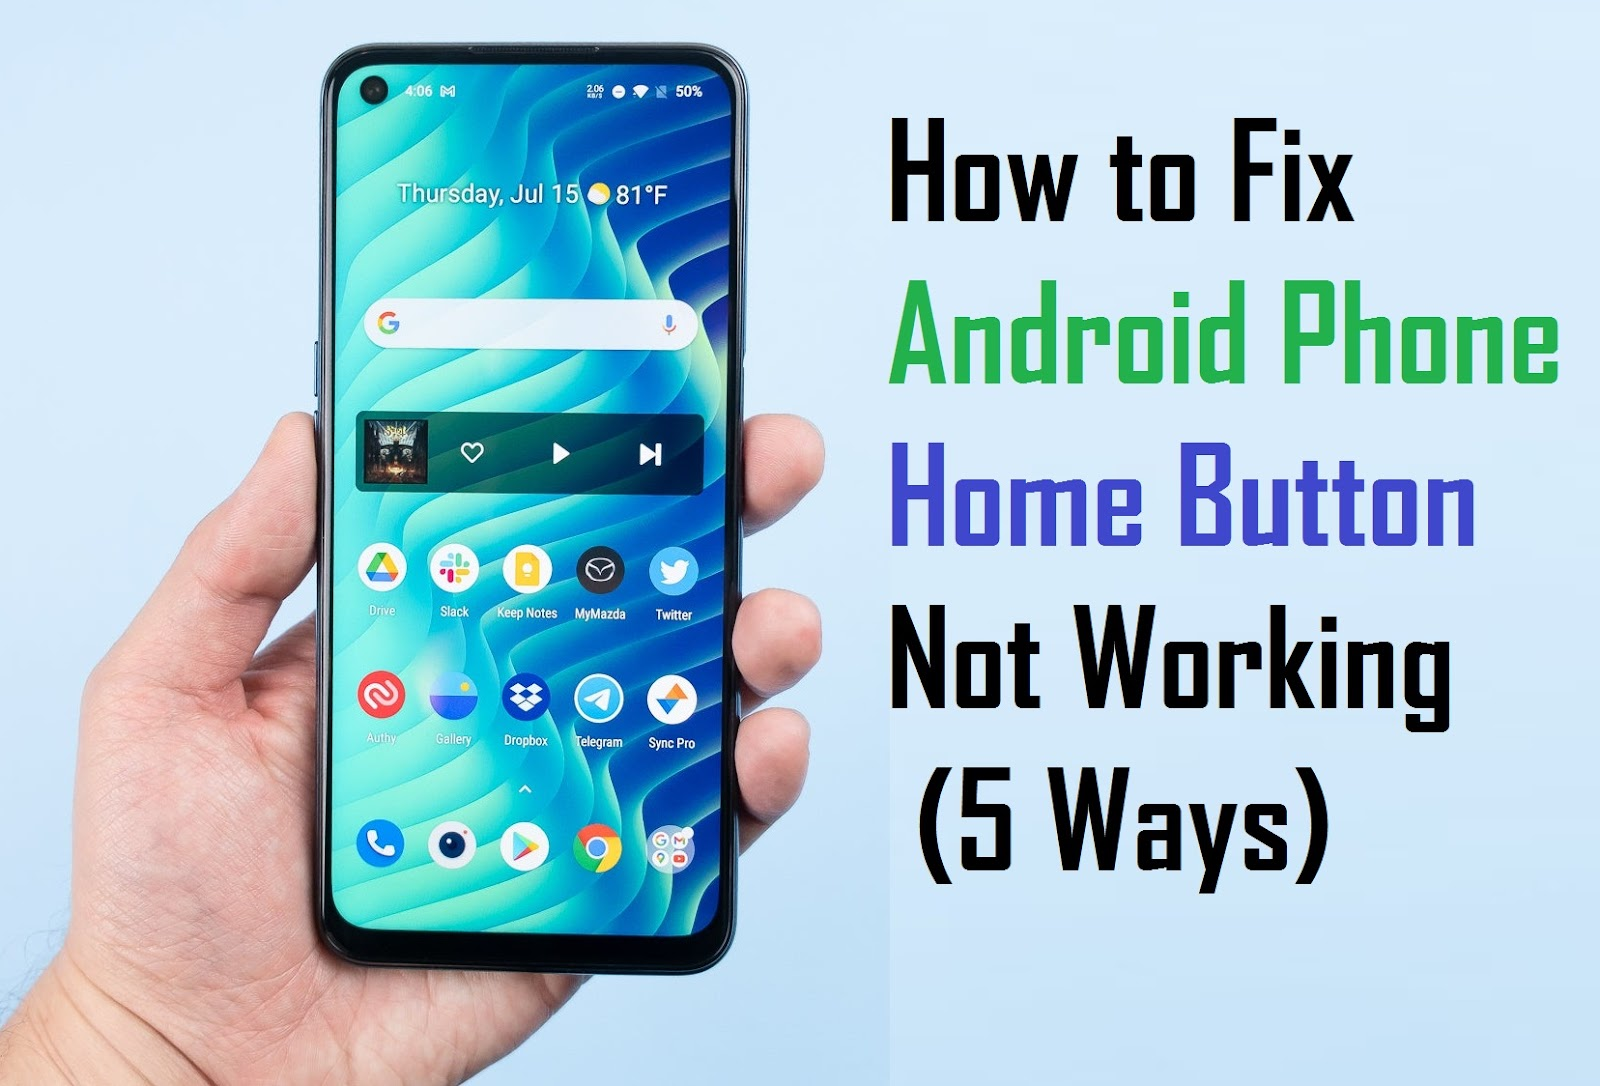 How to Fix Android Phone Home Button Not Working